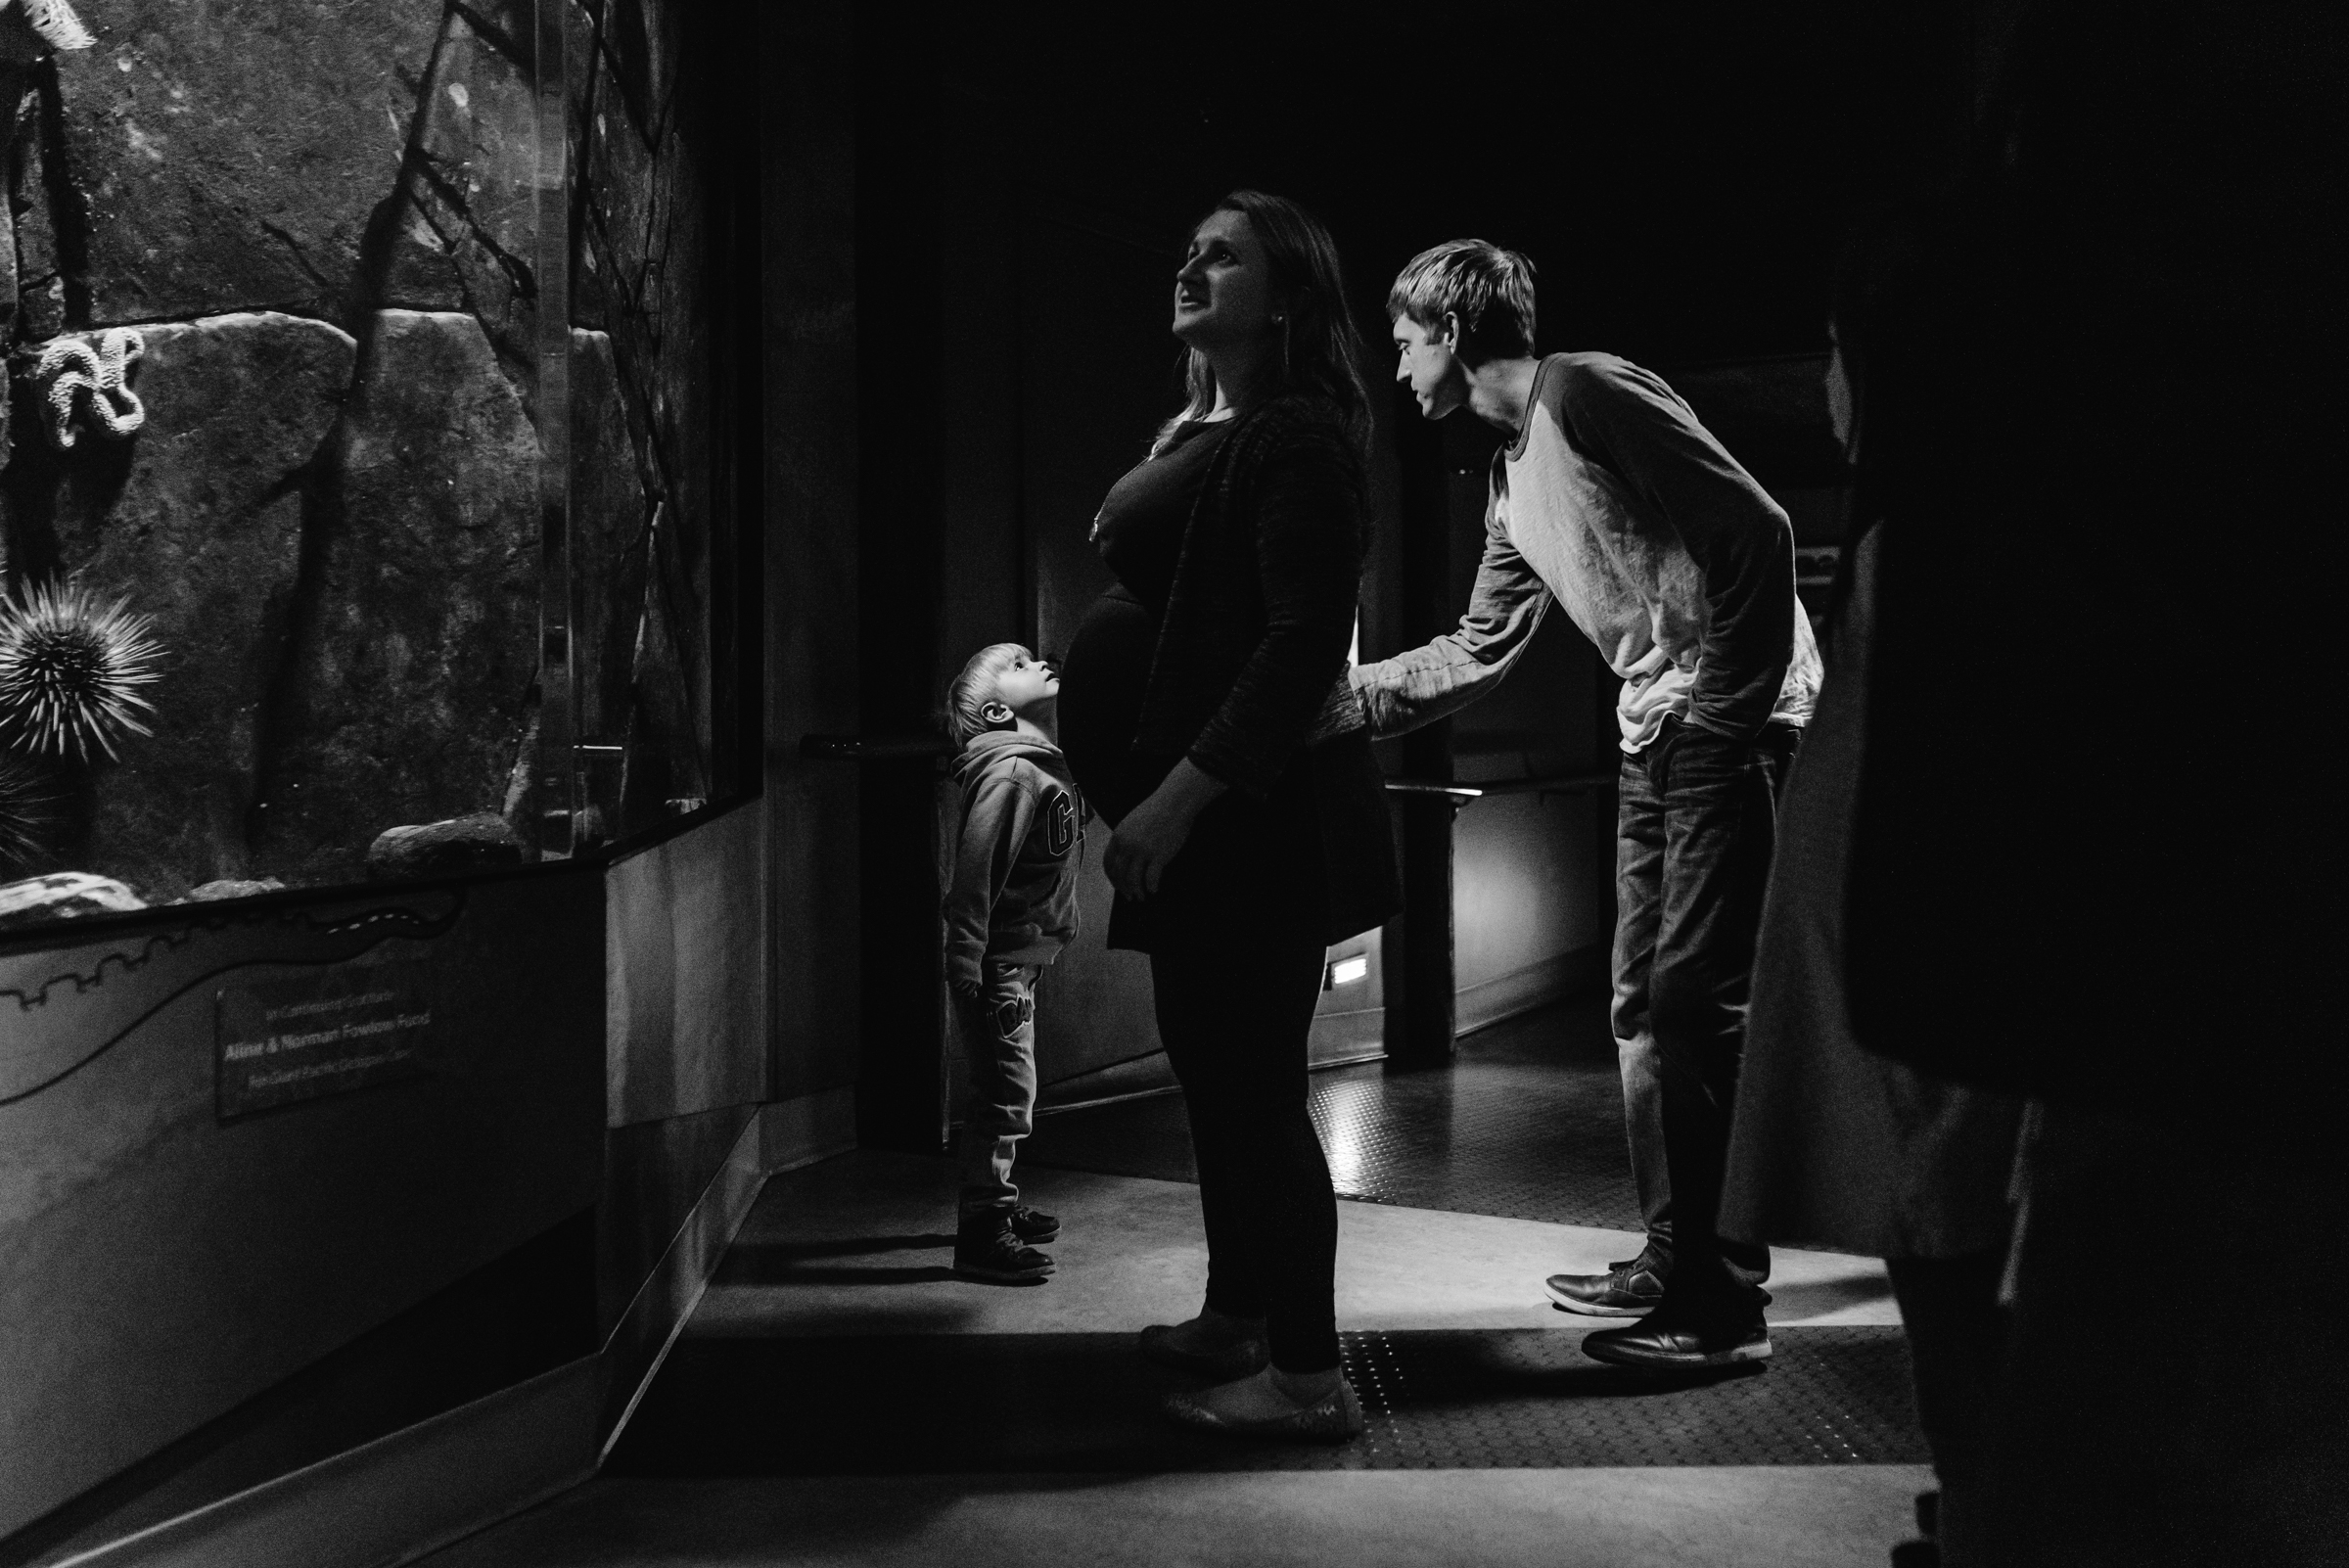 Nicola_Reiersen_Photography_Victoria_BC_Aquarium_Maternity_Session (52).jpg